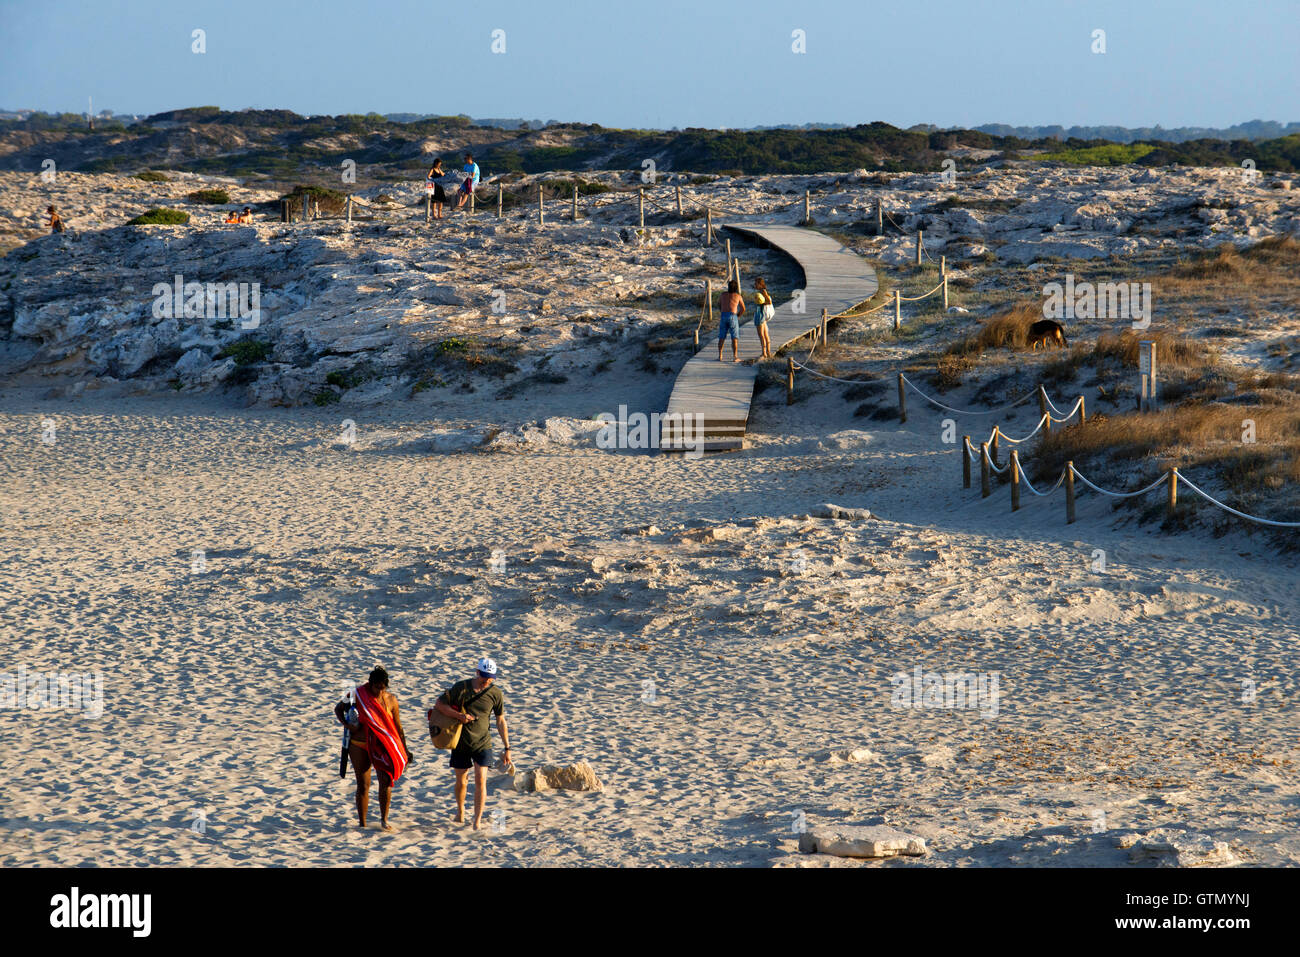 Sa Roqueta Beach and Ses Illetes Beach, Balearic Islands, Formentera, Spain. Couples walking in the sand. - Stock Image